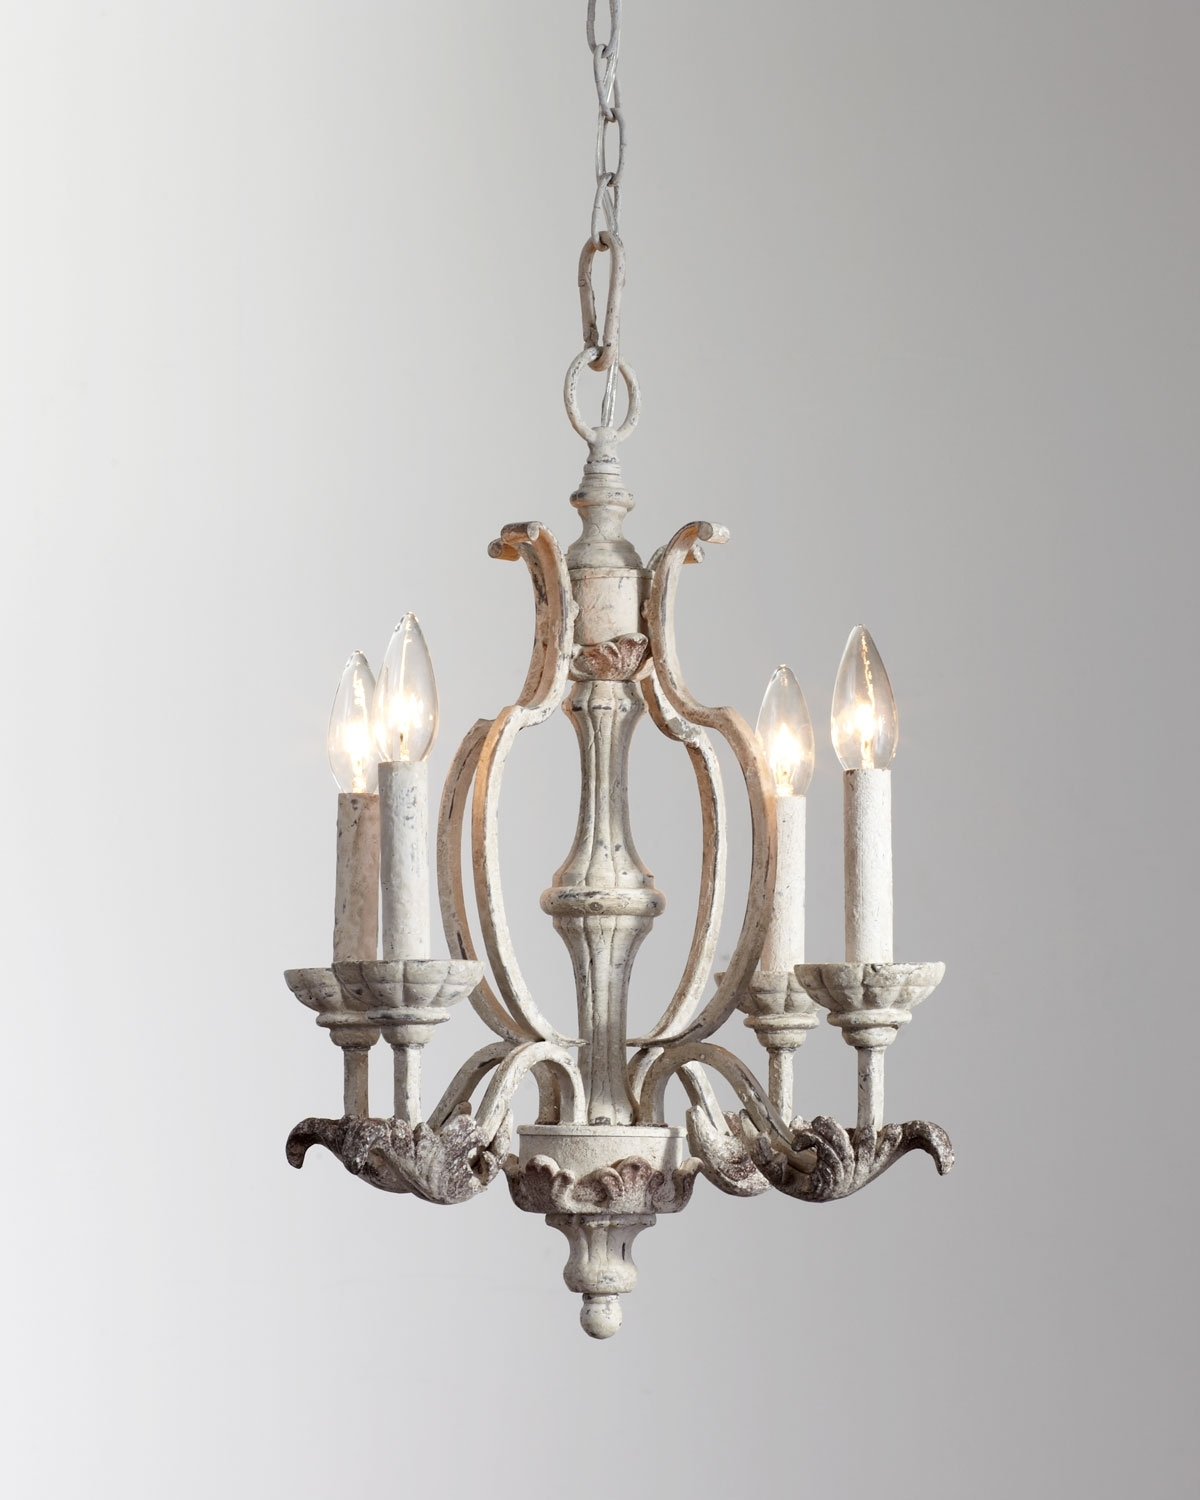 Small White Chandeliers For Recent Chandelier: Excellent Small Chandeliers Mini Chandelier For Lockers (View 11 of 20)